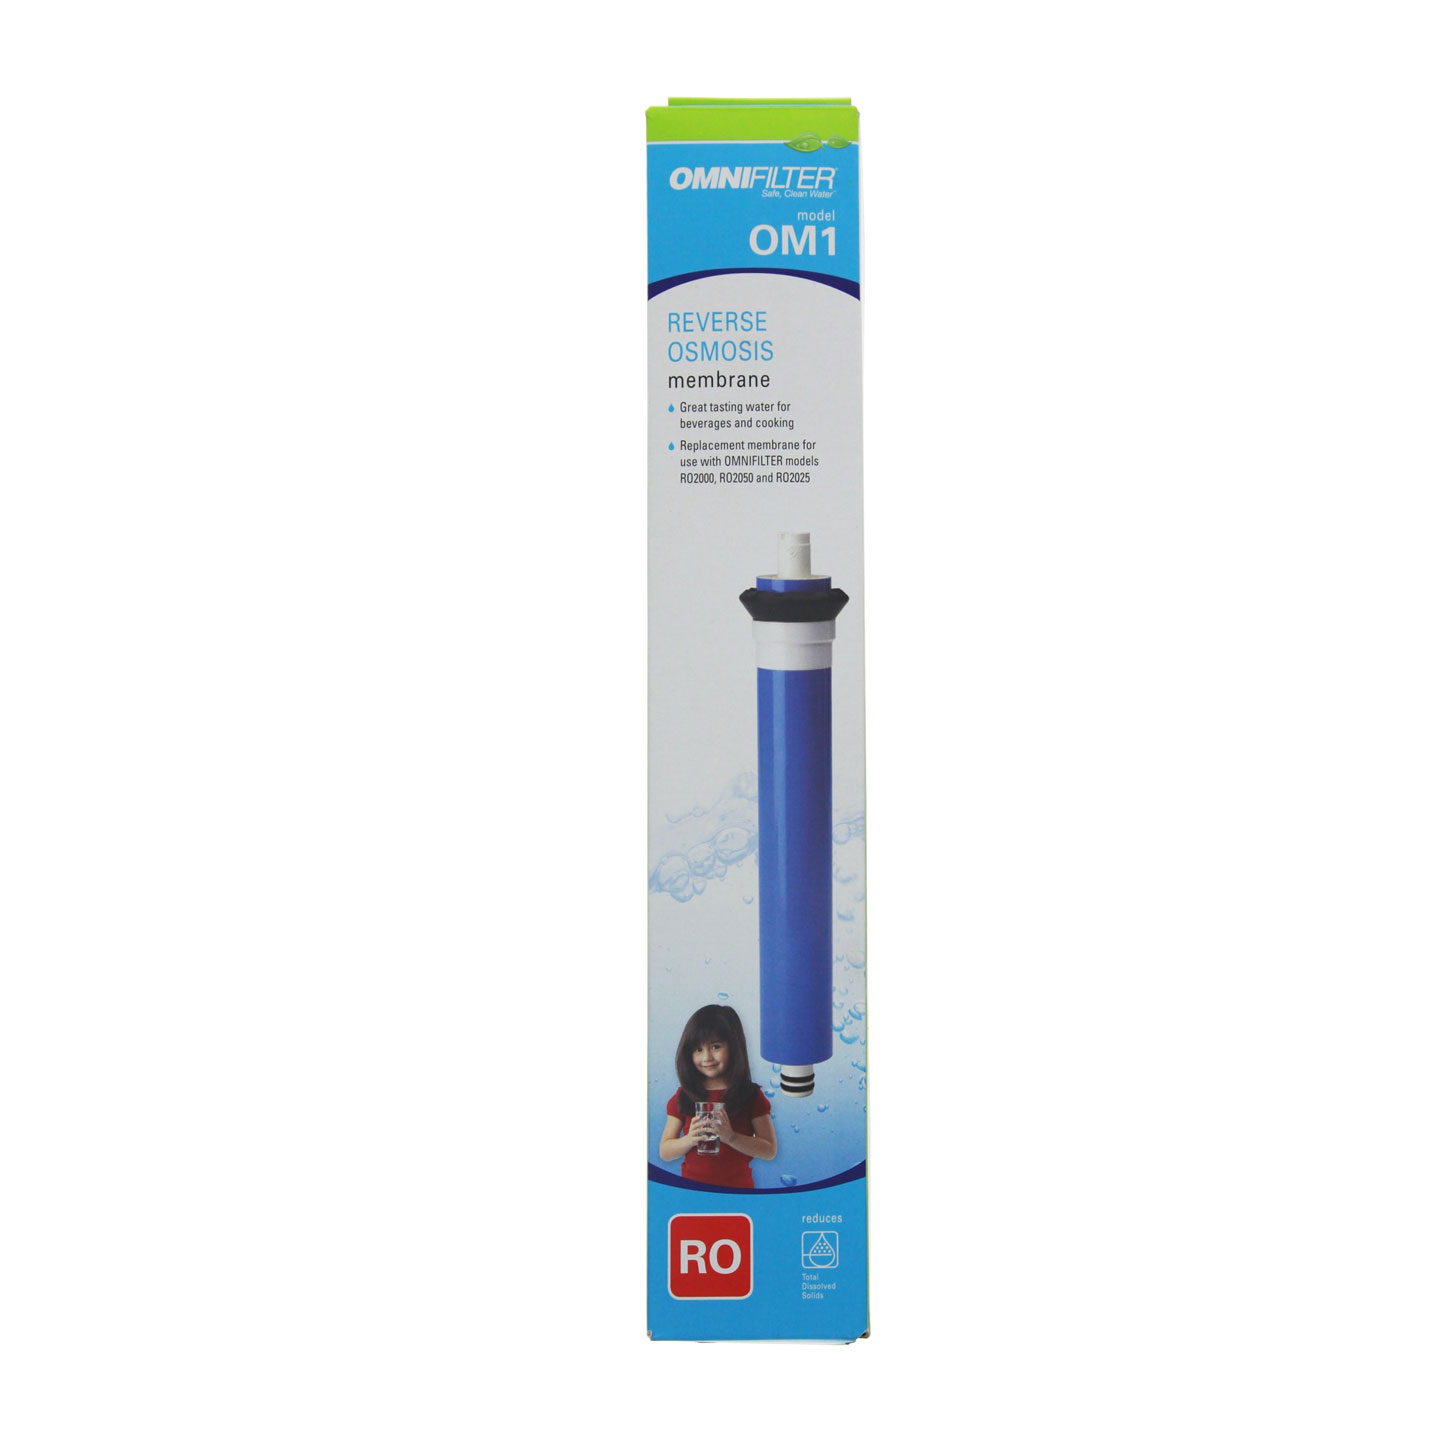 OM1-S6-S06 OmniFilter Reverse Osmosis Membrane